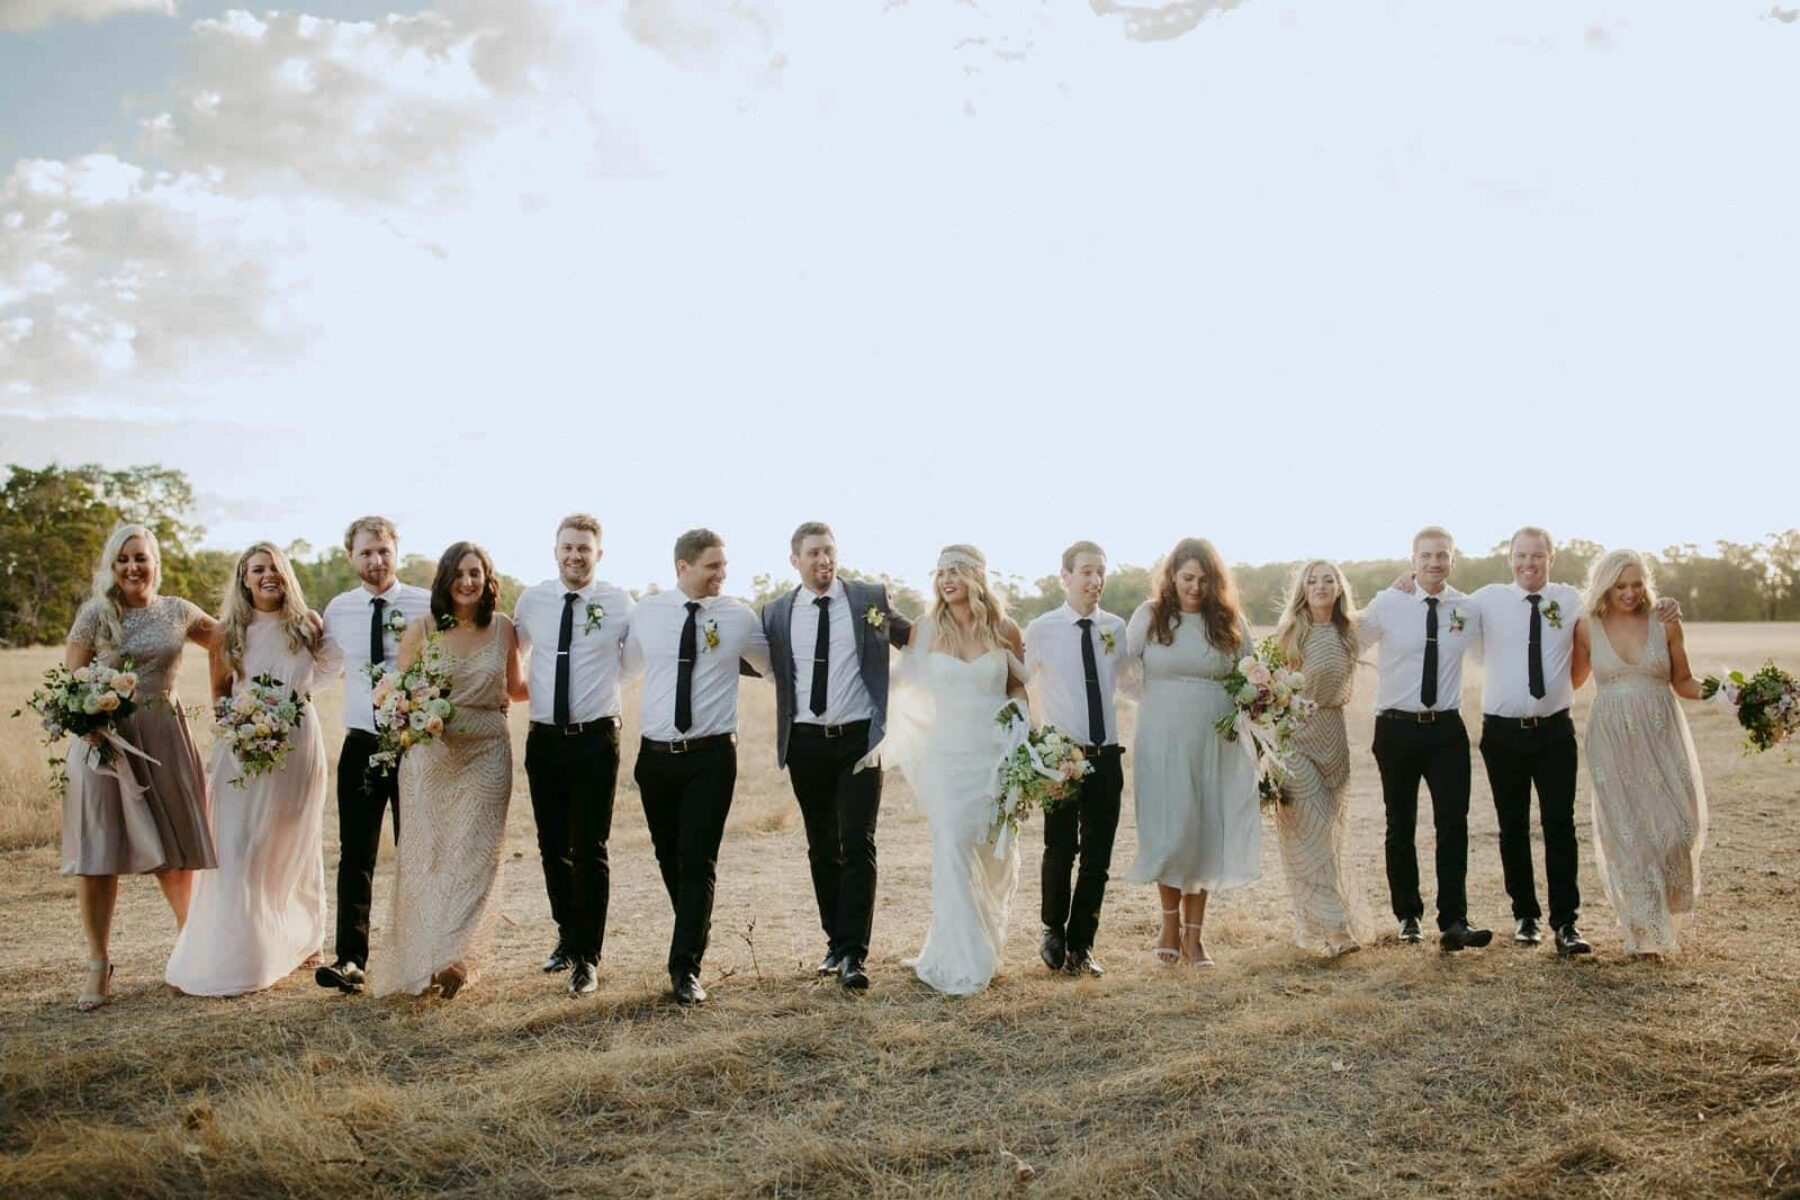 Gatsby inspired bridal party with mismatched neutral bridesmaid dresses